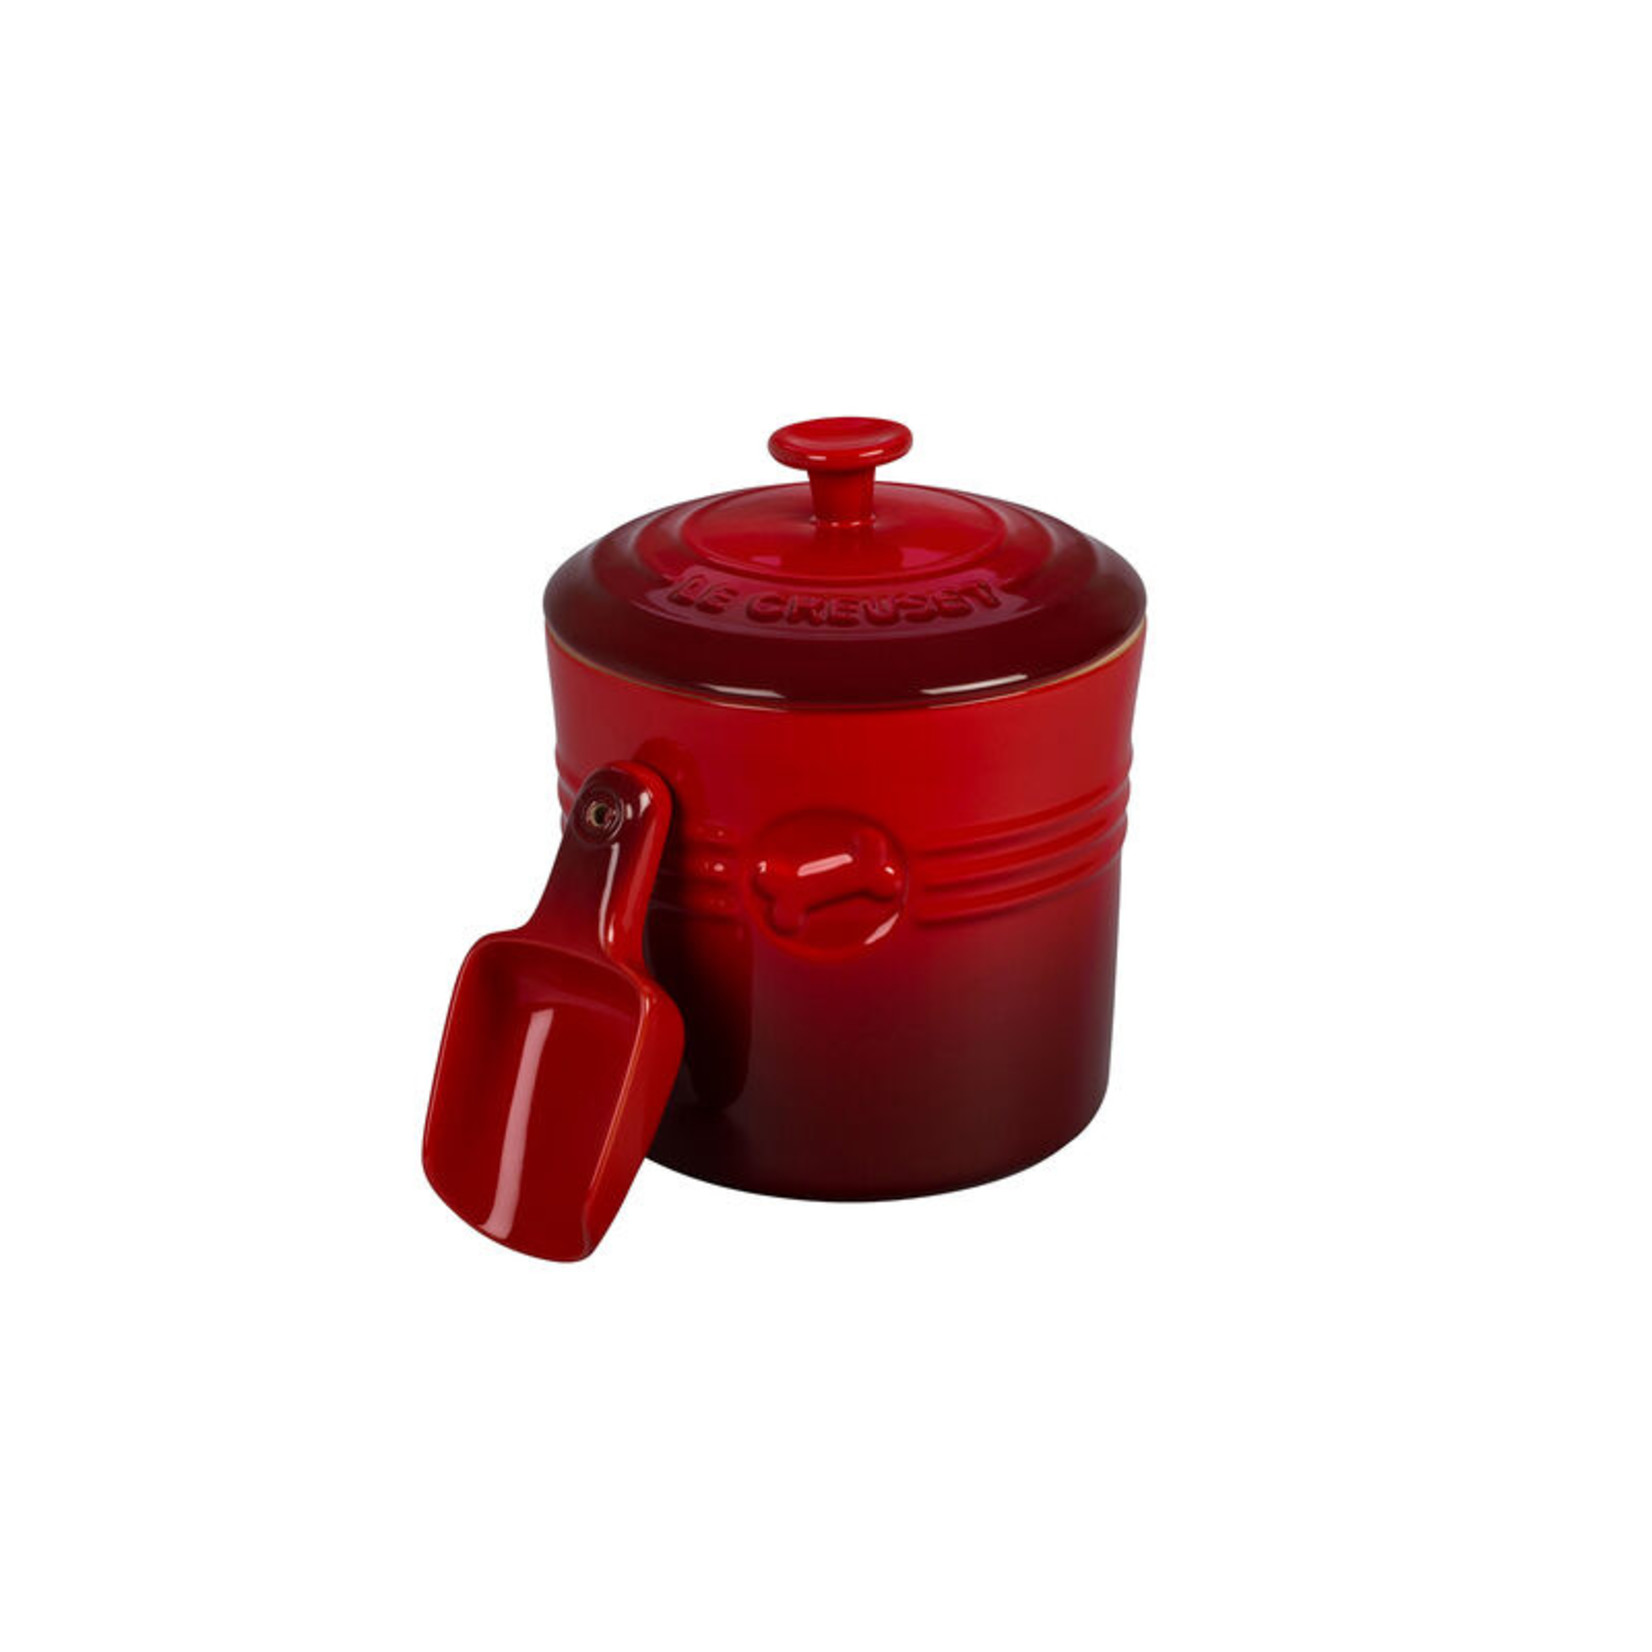 Le Creuset Pet Food Container with Scoop